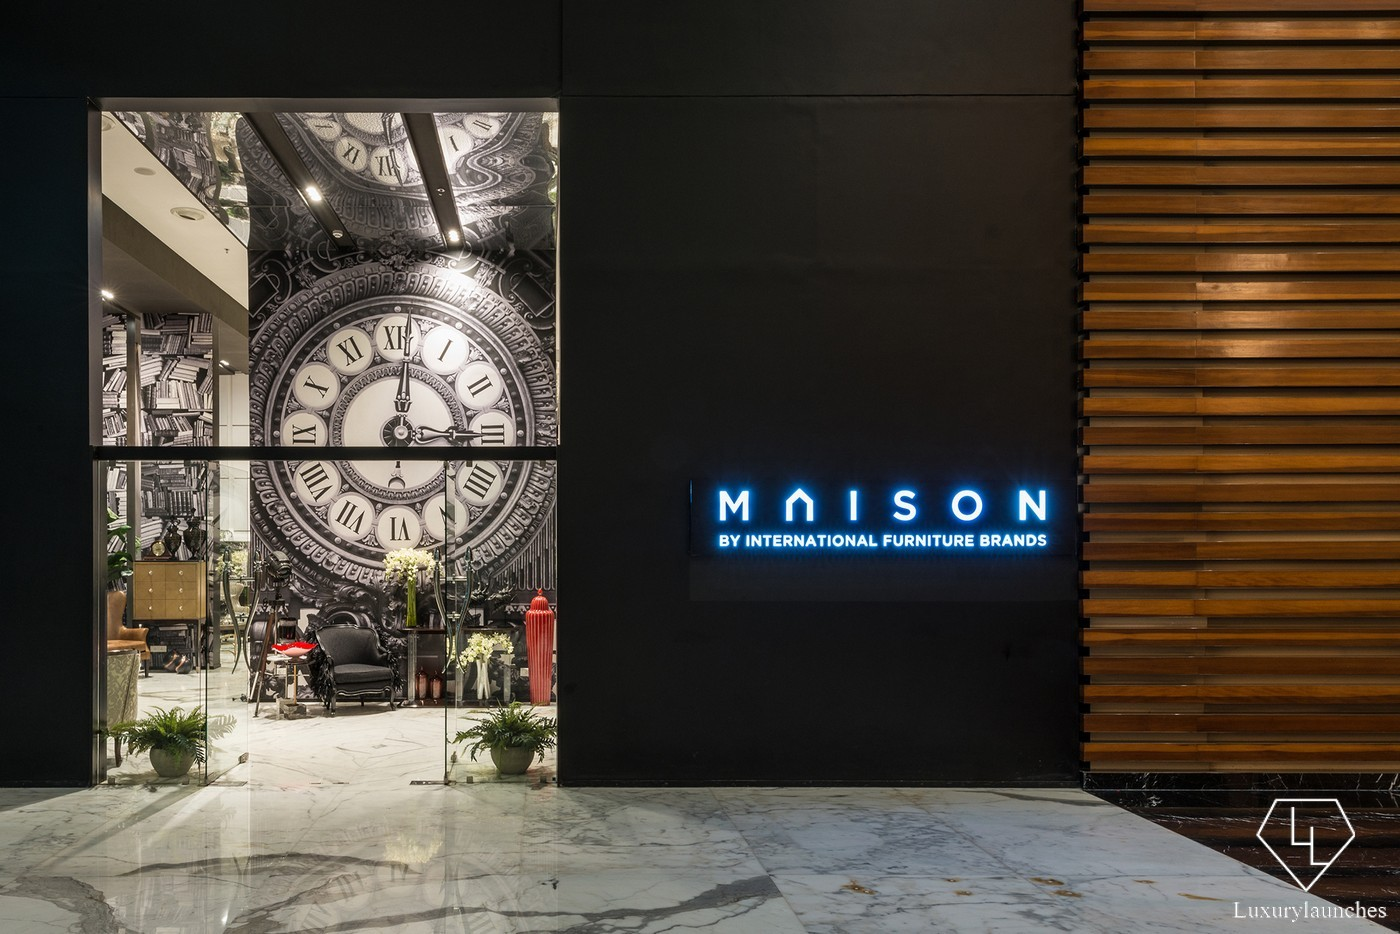 Luxury Furniture Stores Luxury Furniture Store Maison Debuts In India With A